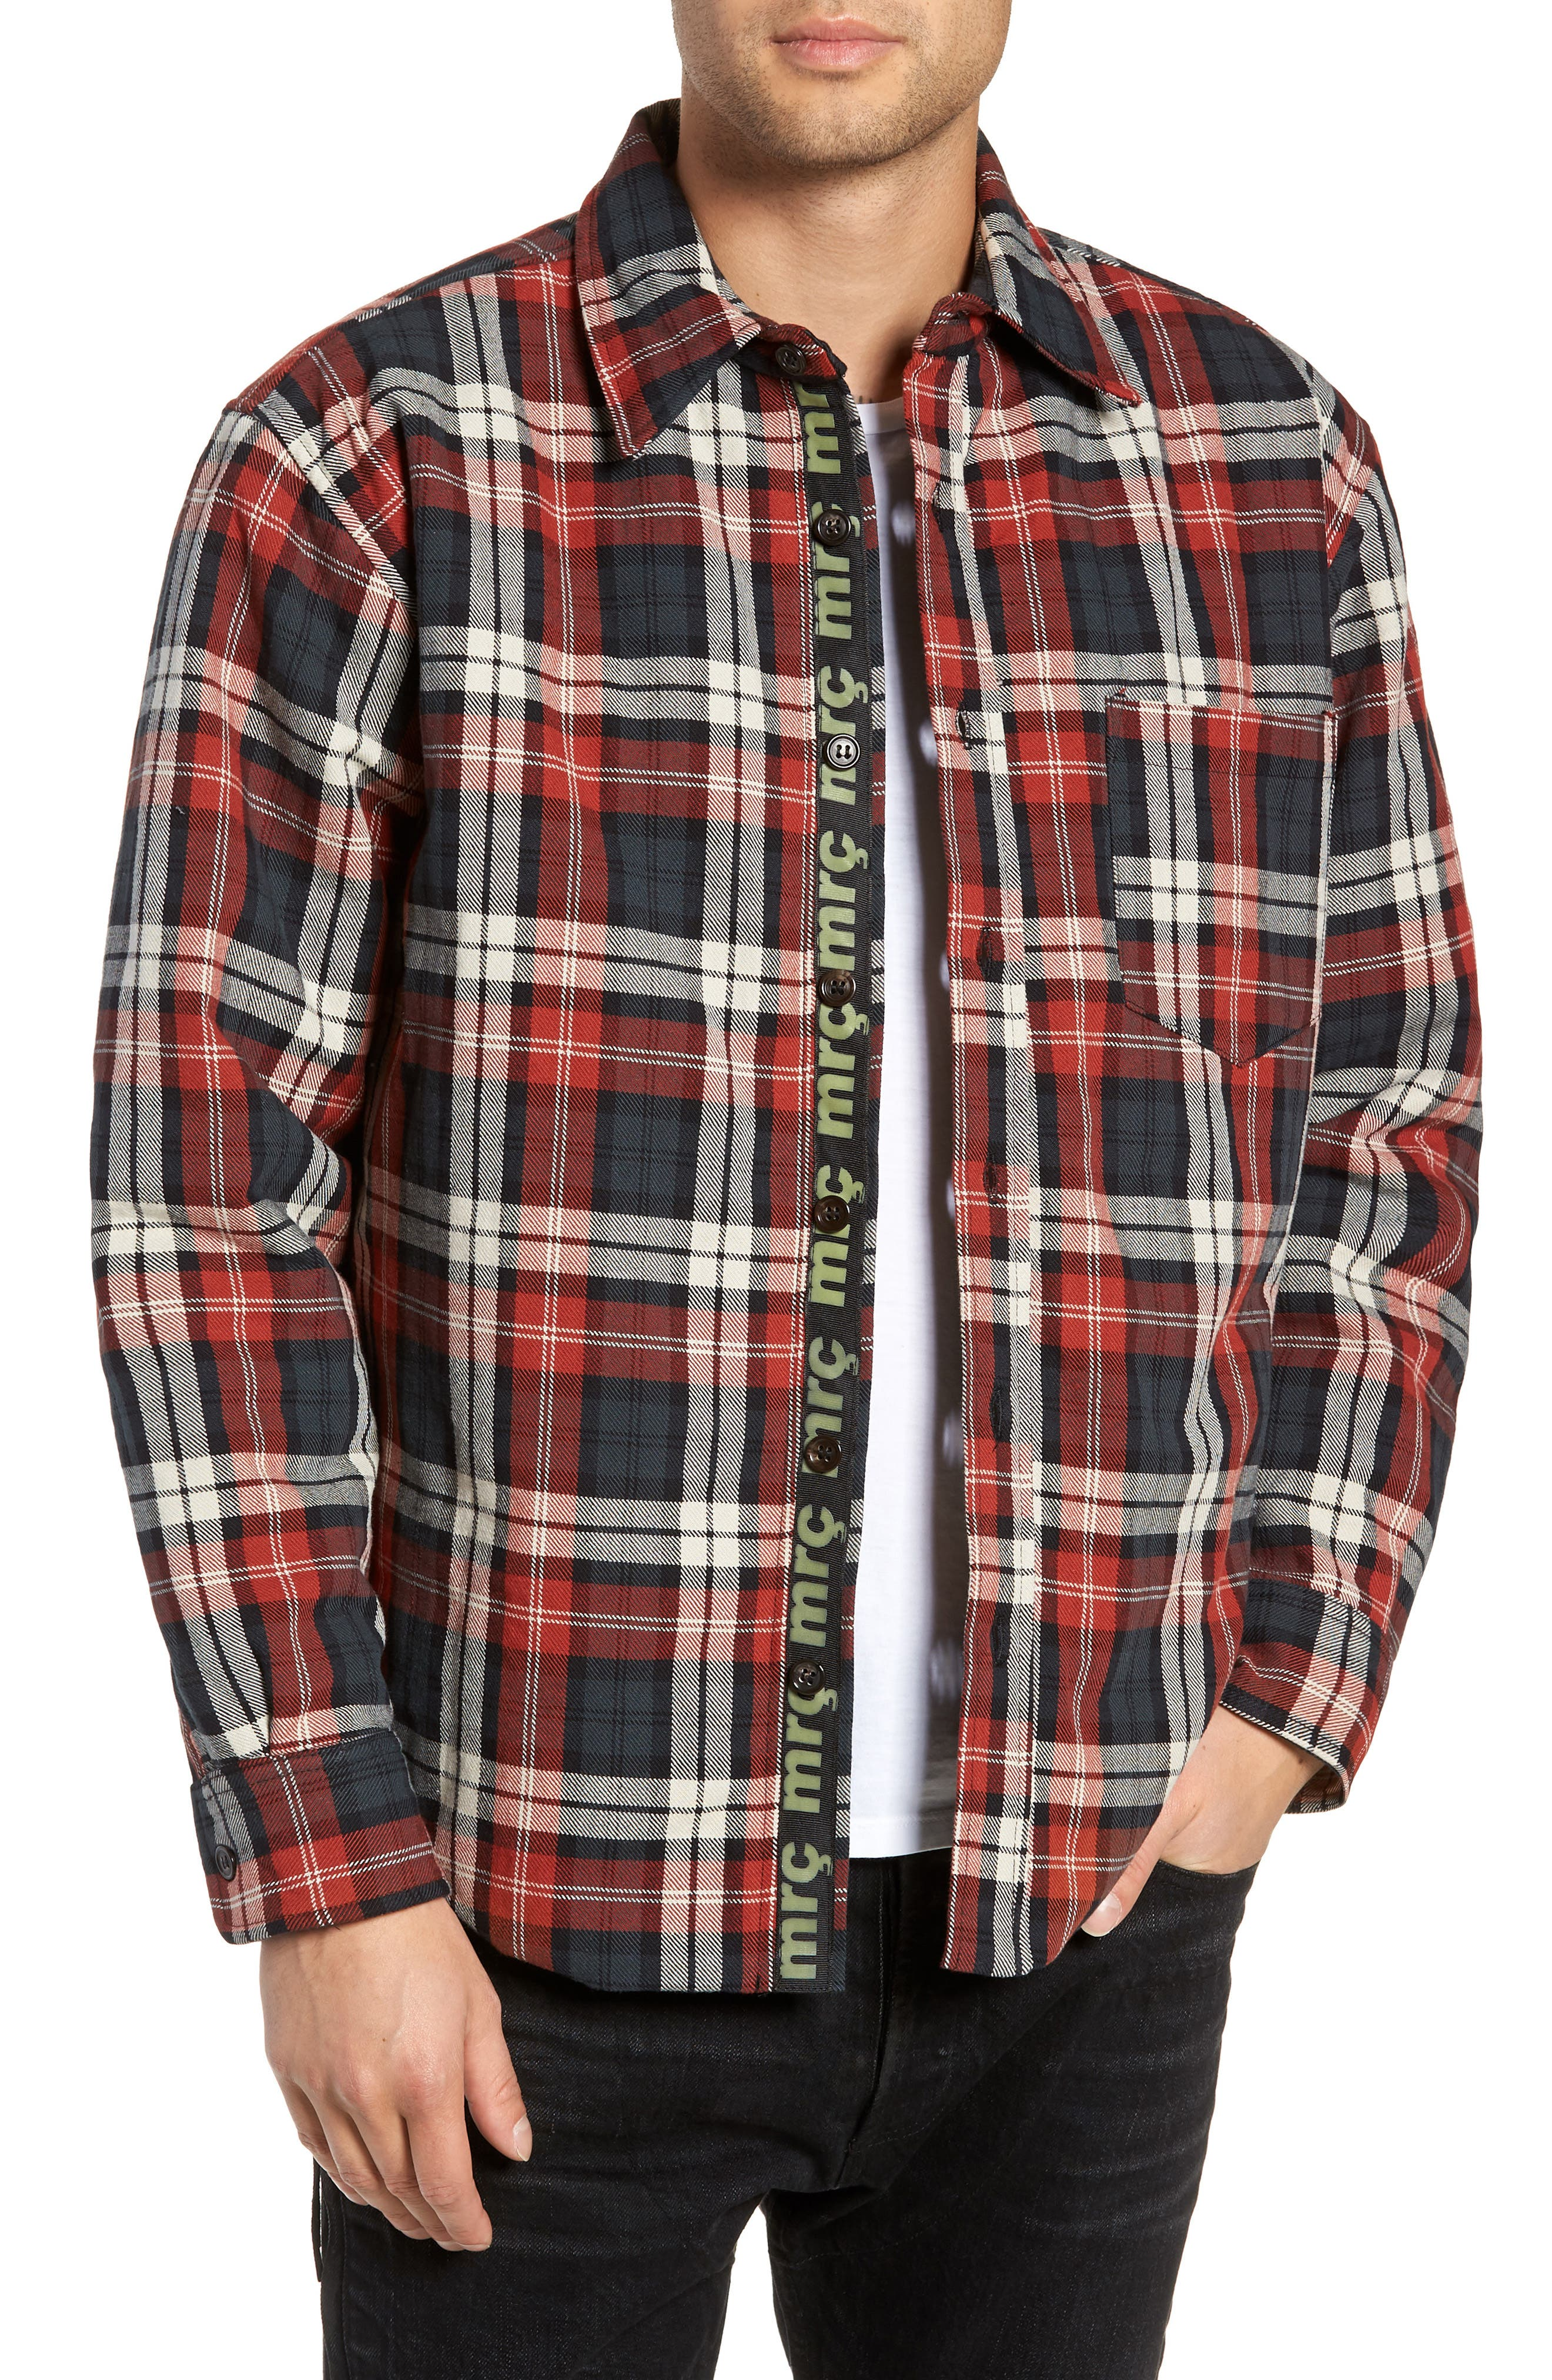 Puffy Classic Fit Work Shirt,                         Main,                         color, RED PLAID